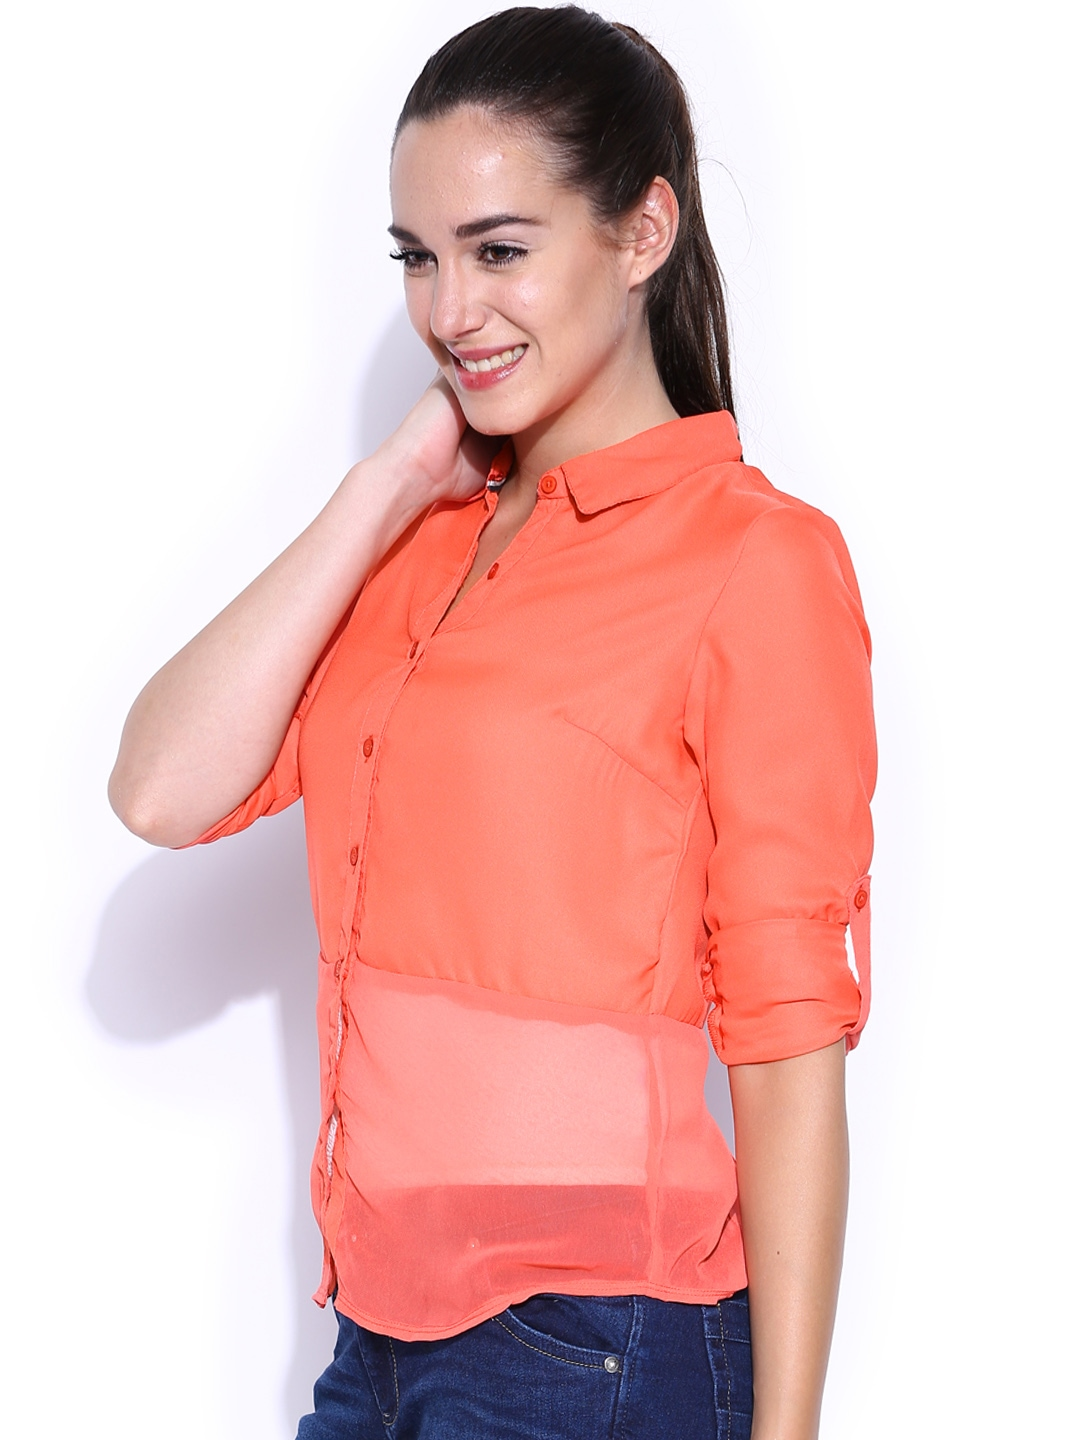 Myntra hrx women coral orange shirt 412033 buy myntra for Coral t shirt womens